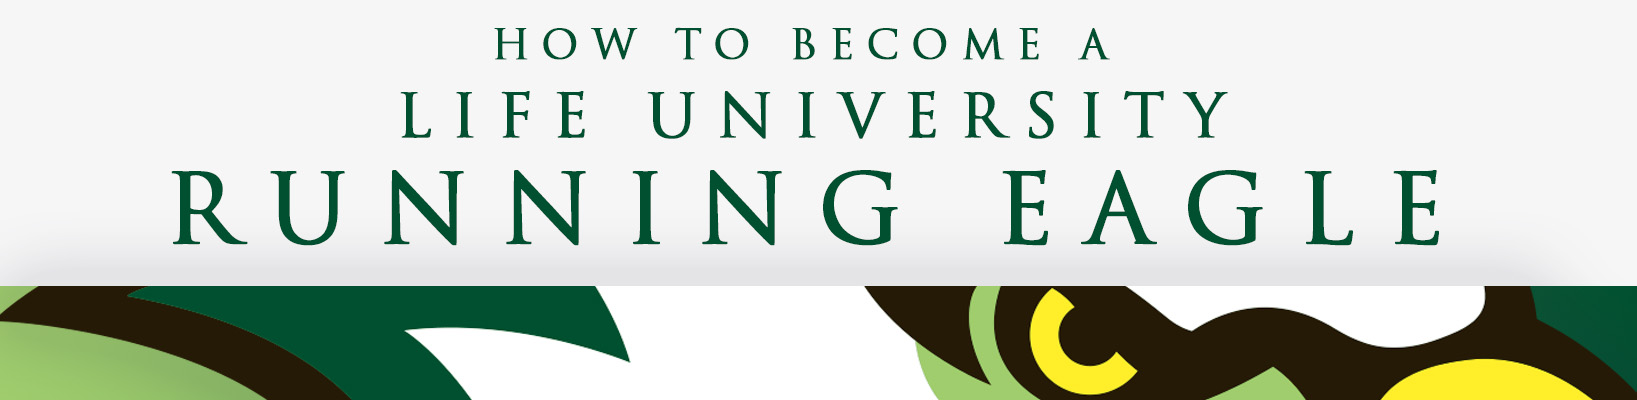 How to Become a Life University Running Eagle